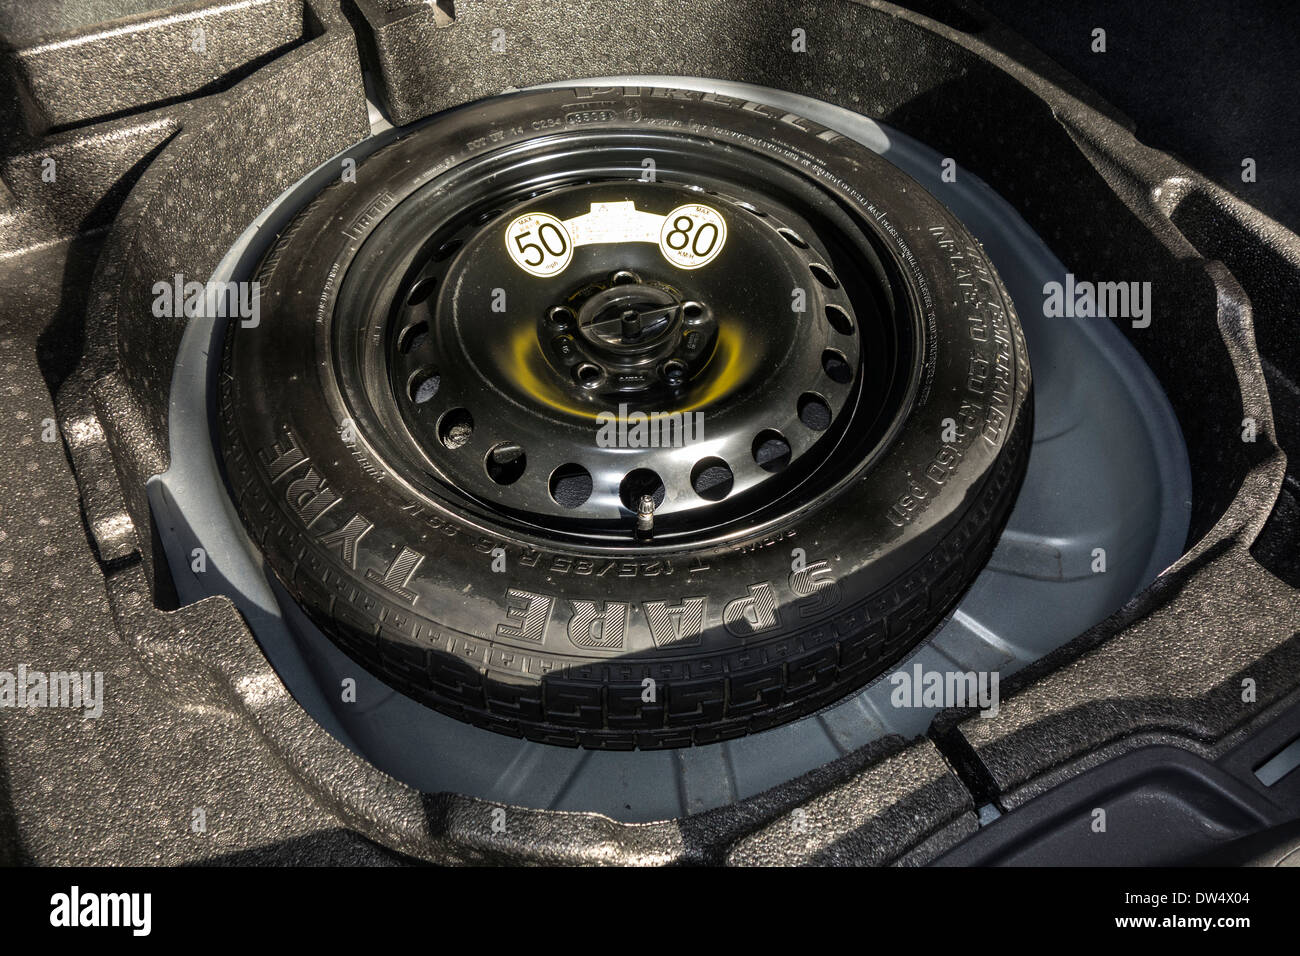 Space-saver spare wheel in trunk of car with limited speed limit of maximum 50 mph / 80 km/h - Stock Image